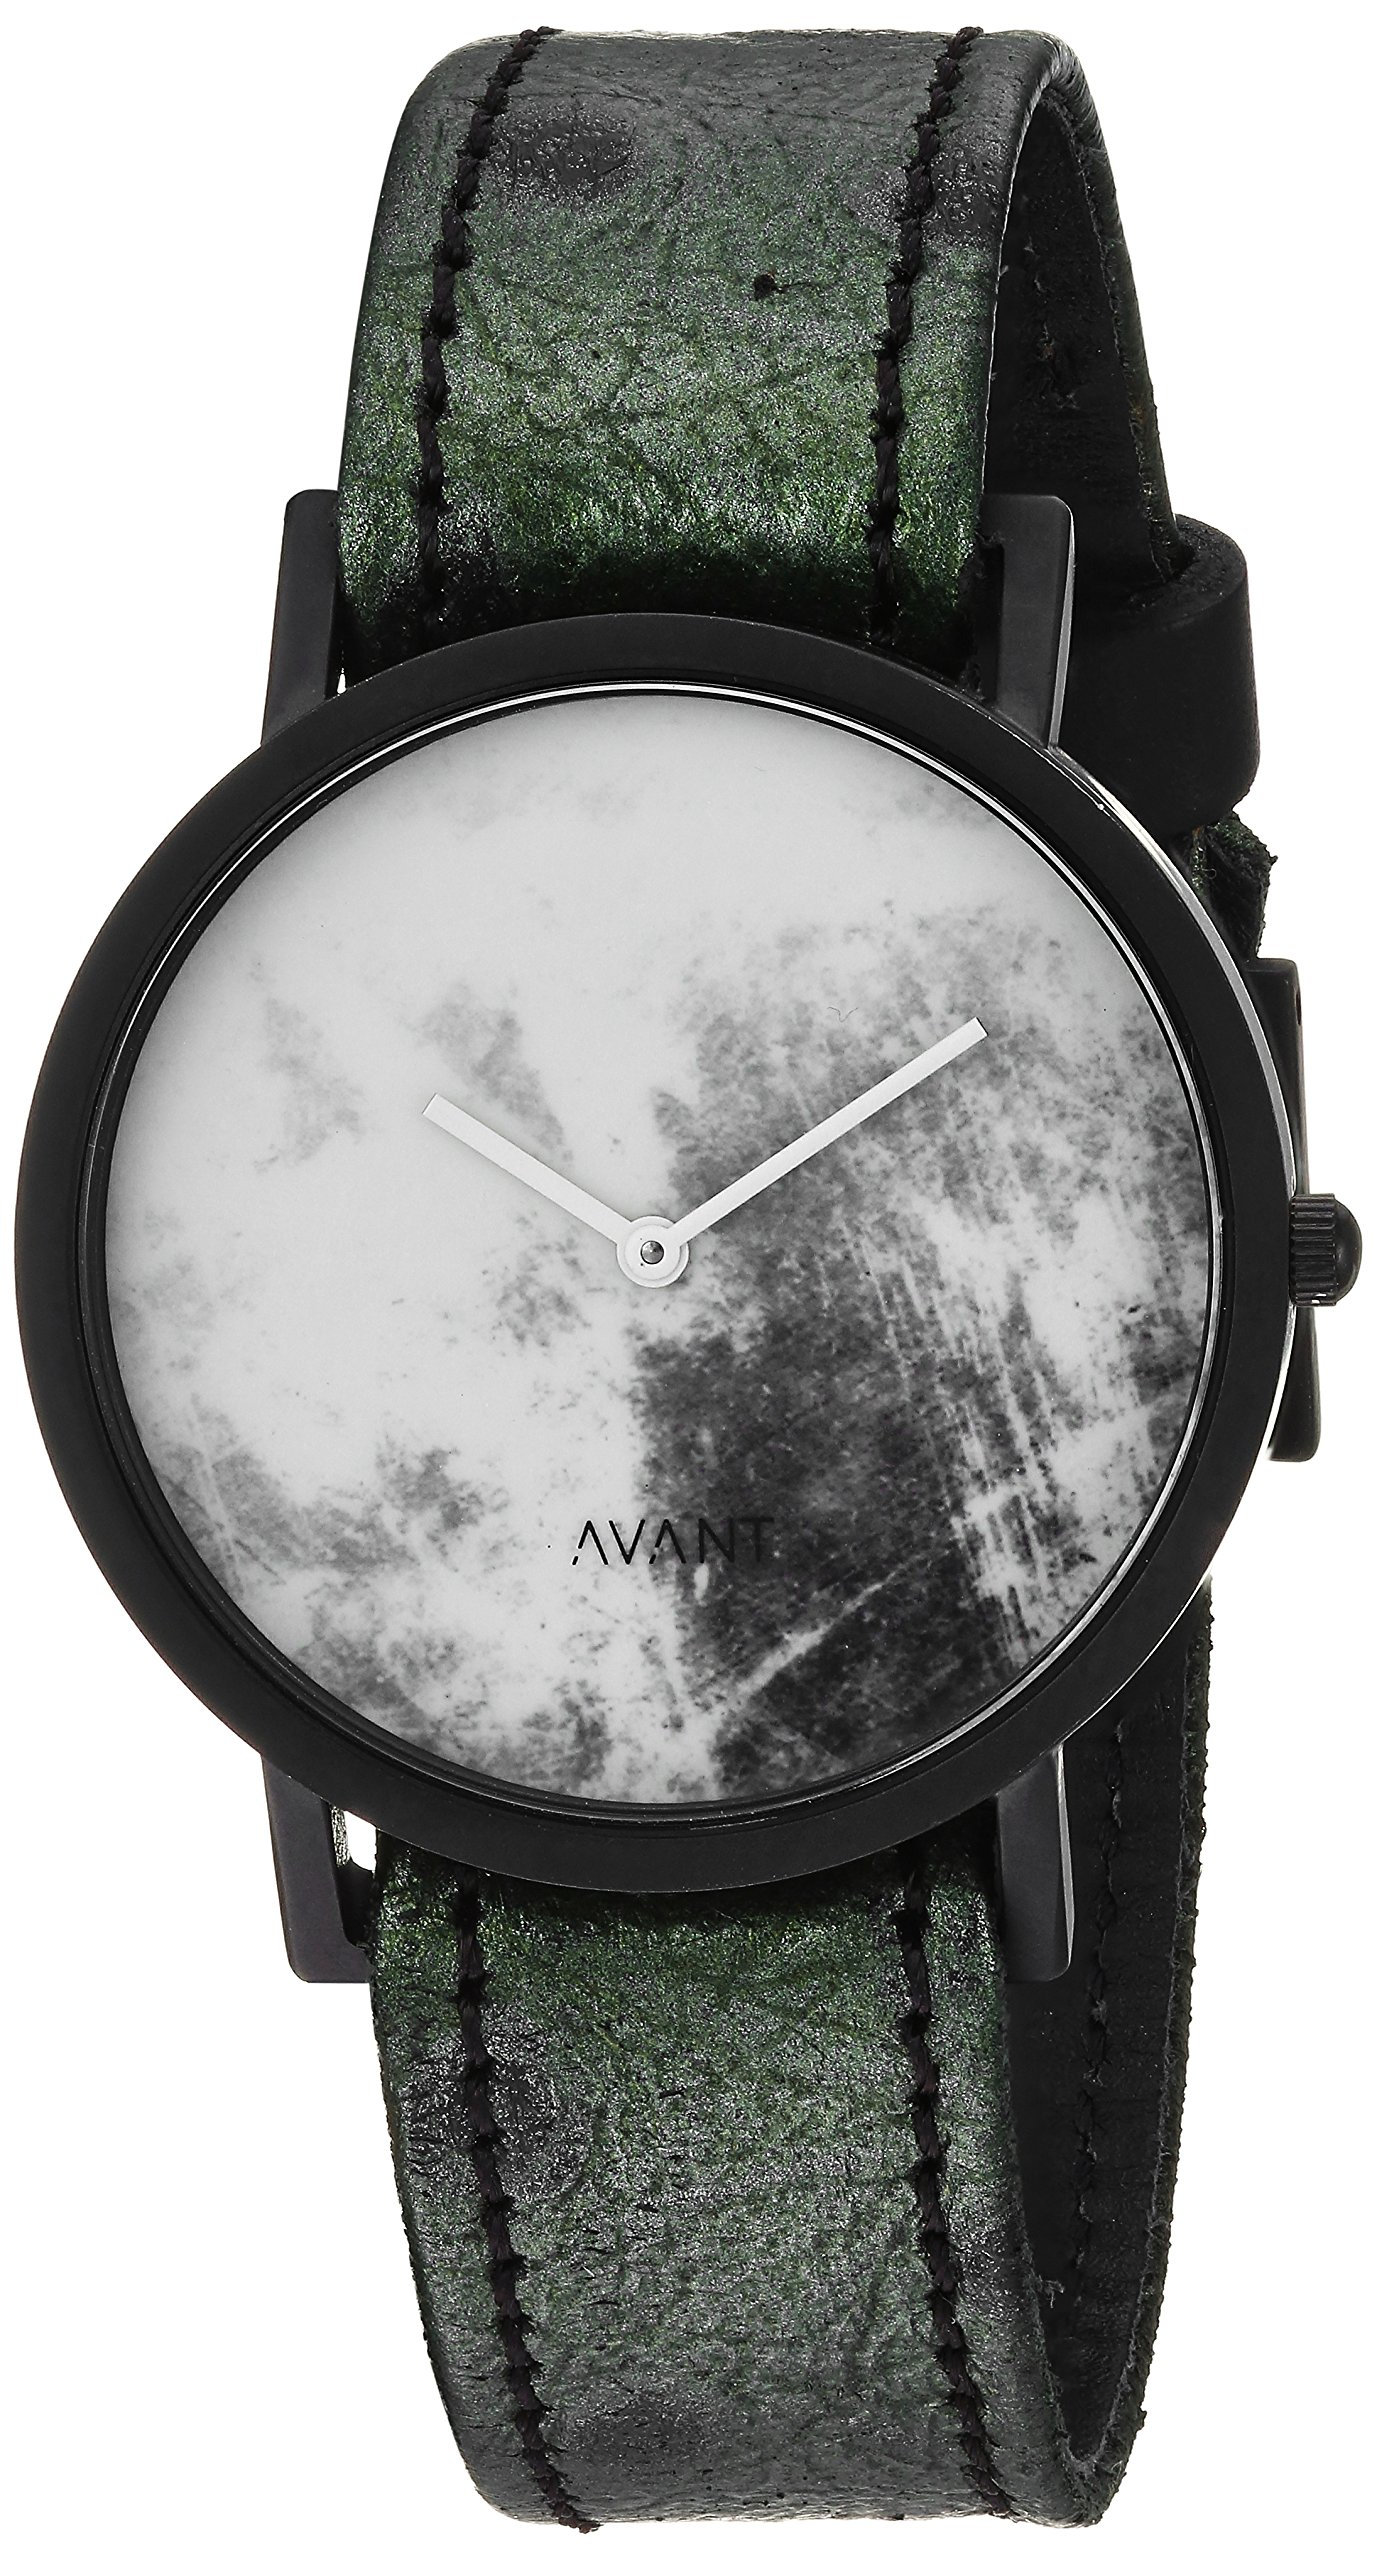 South Lane 'DIFFUSE' Swiss Quartz Stainless Steel and Leather Casual Watch, Color:Green (Model: 38-invert-2) by South Lane